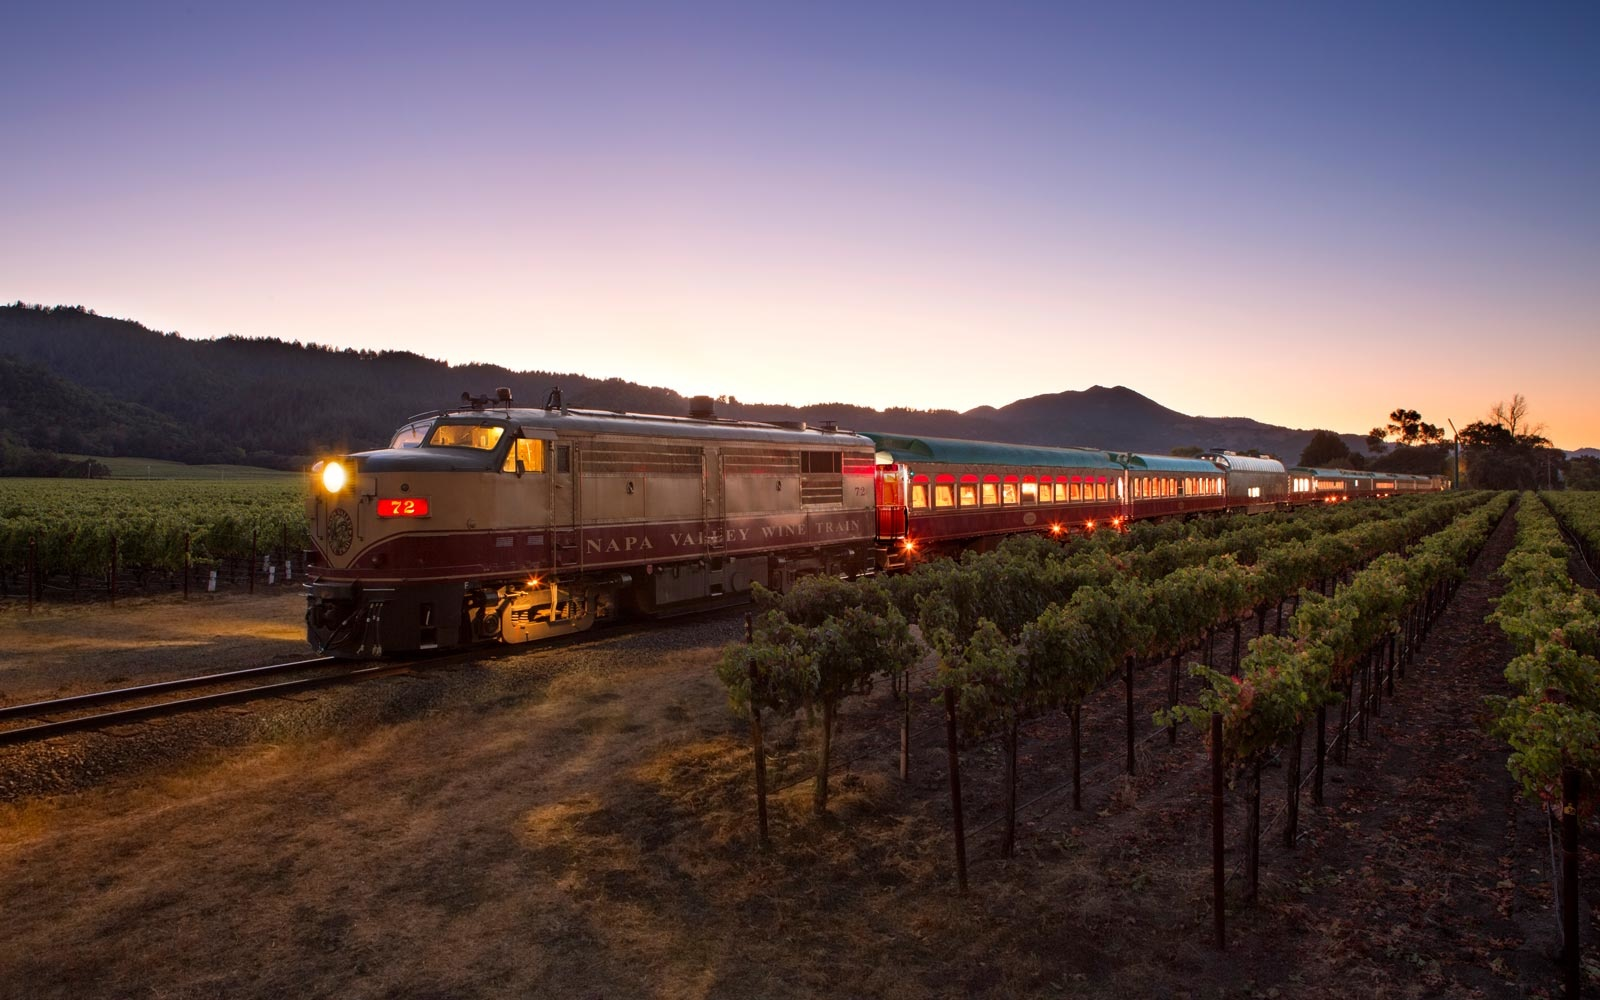 Napa Valley Wine Train on track in vineyards